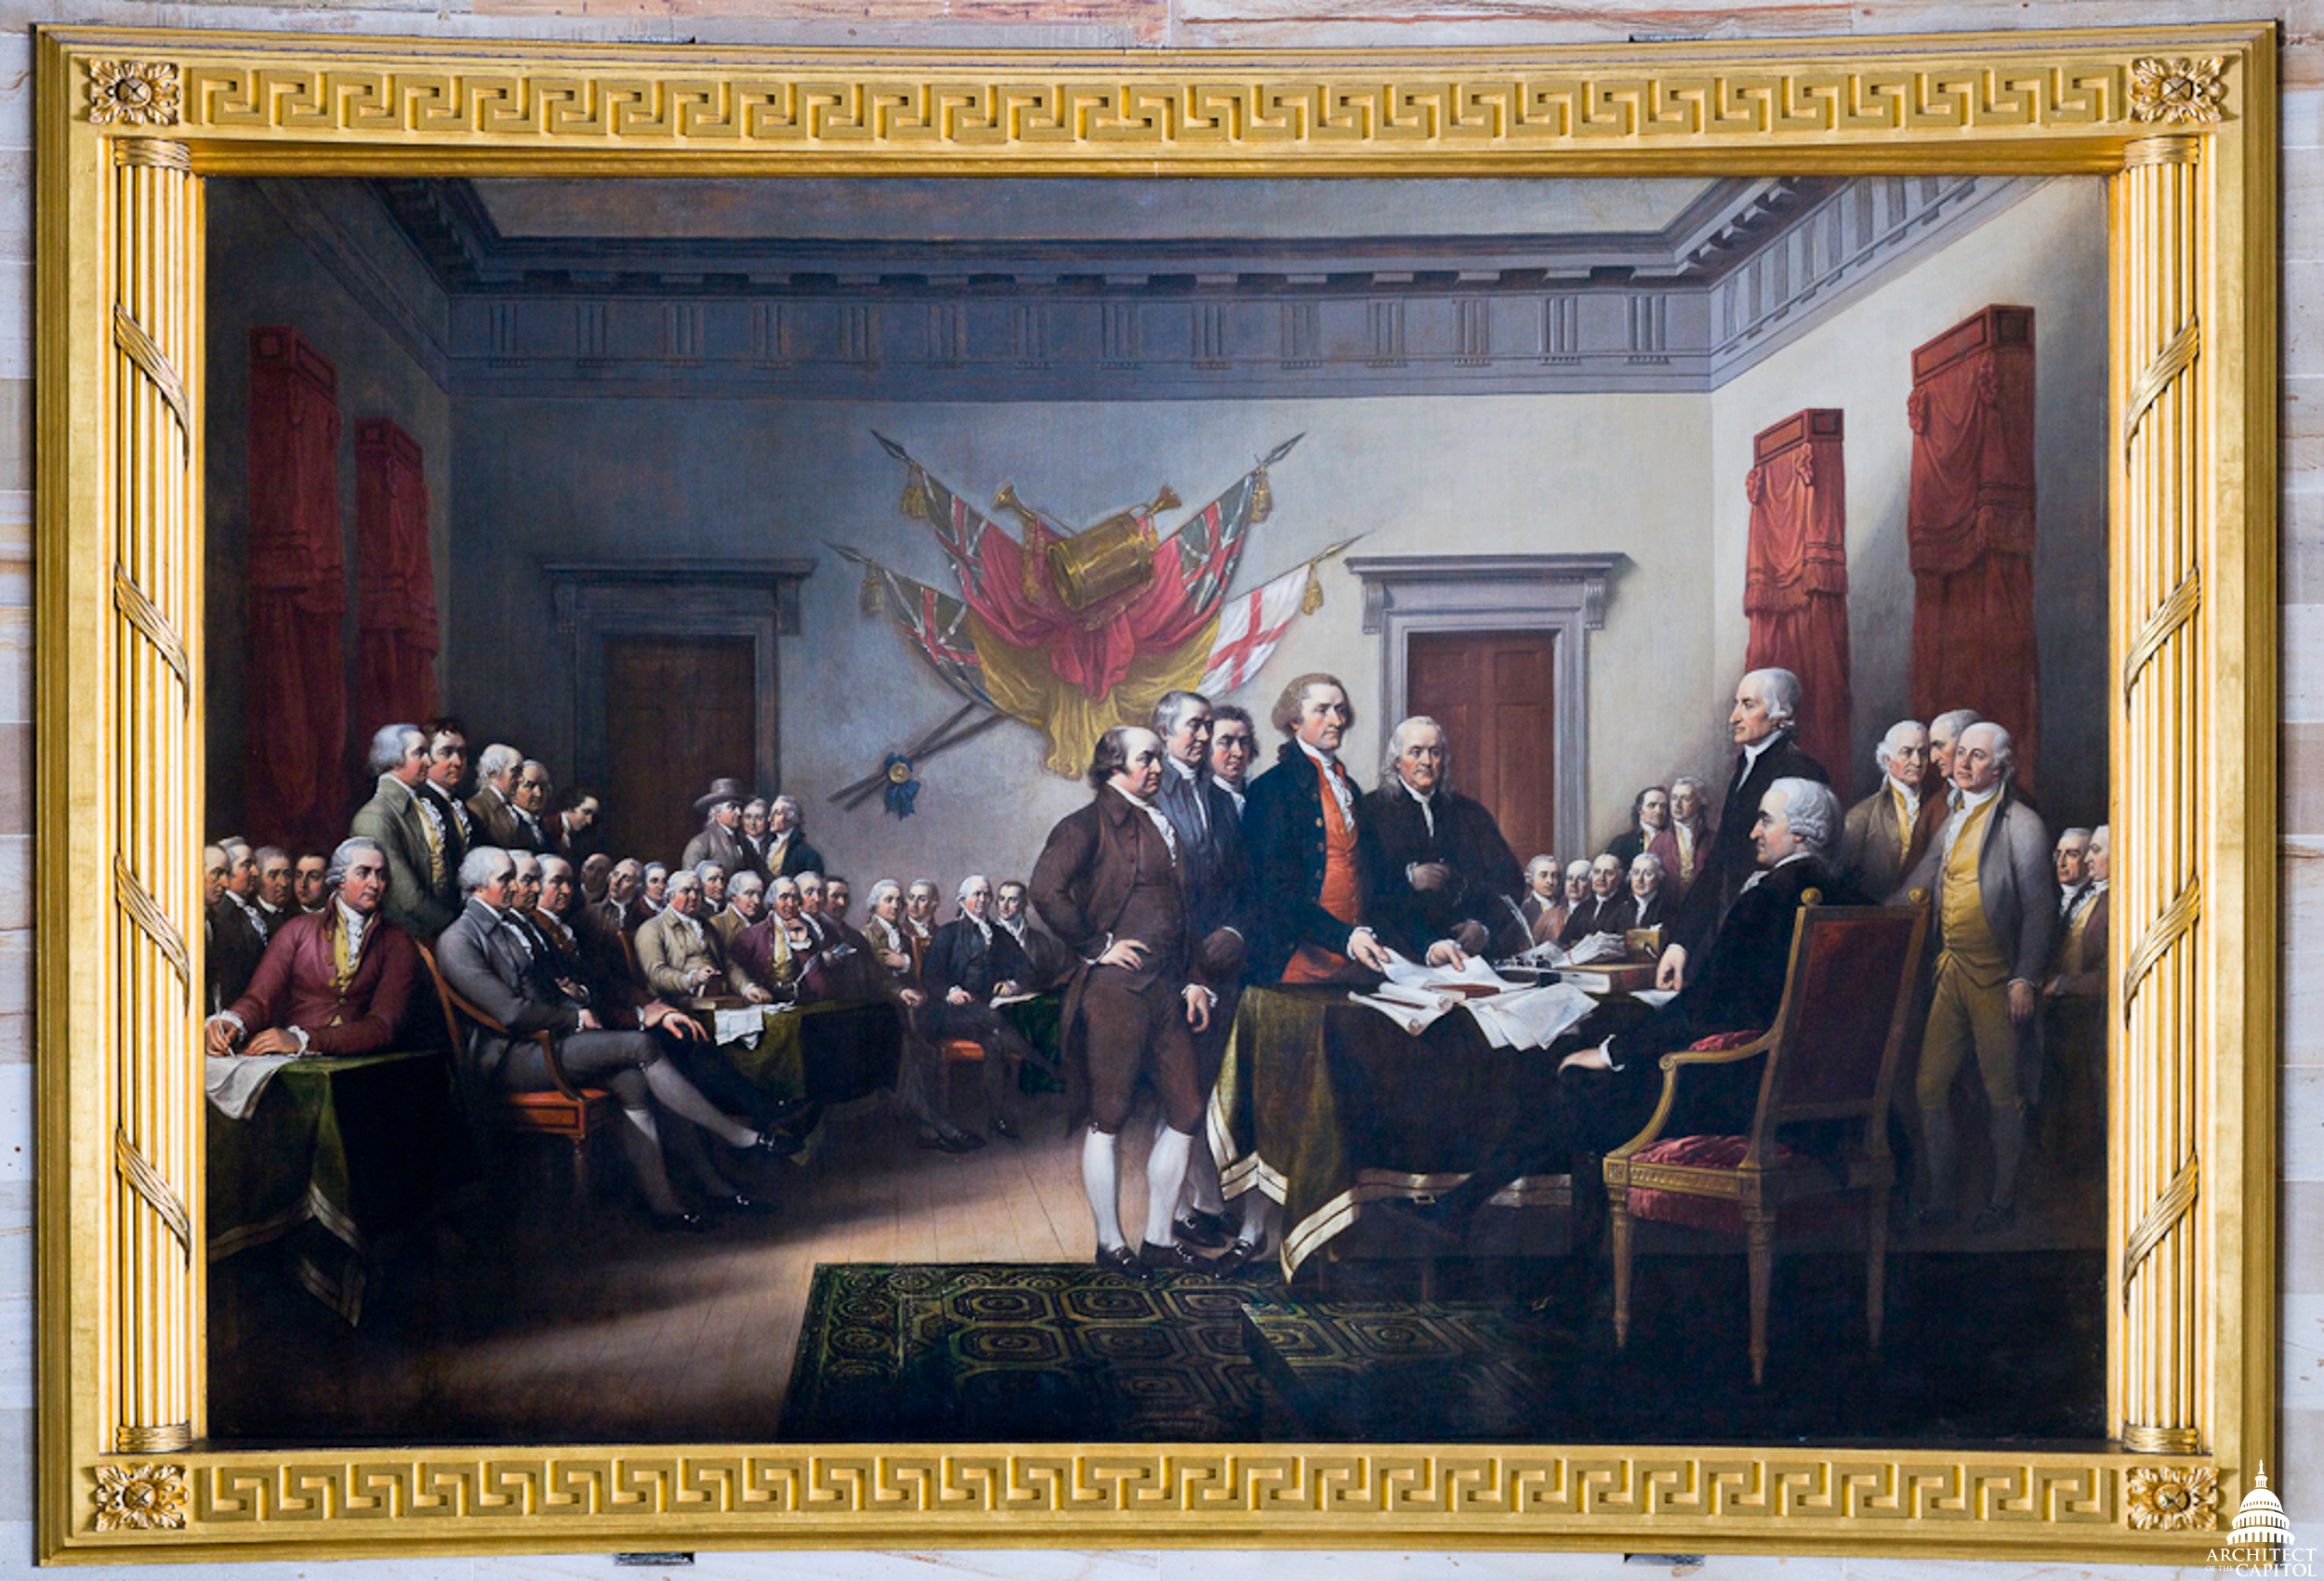 Declaration of Independence in Congress at the Independence Hall, Philadelphia, July 4, 1776 by John Trumbull.